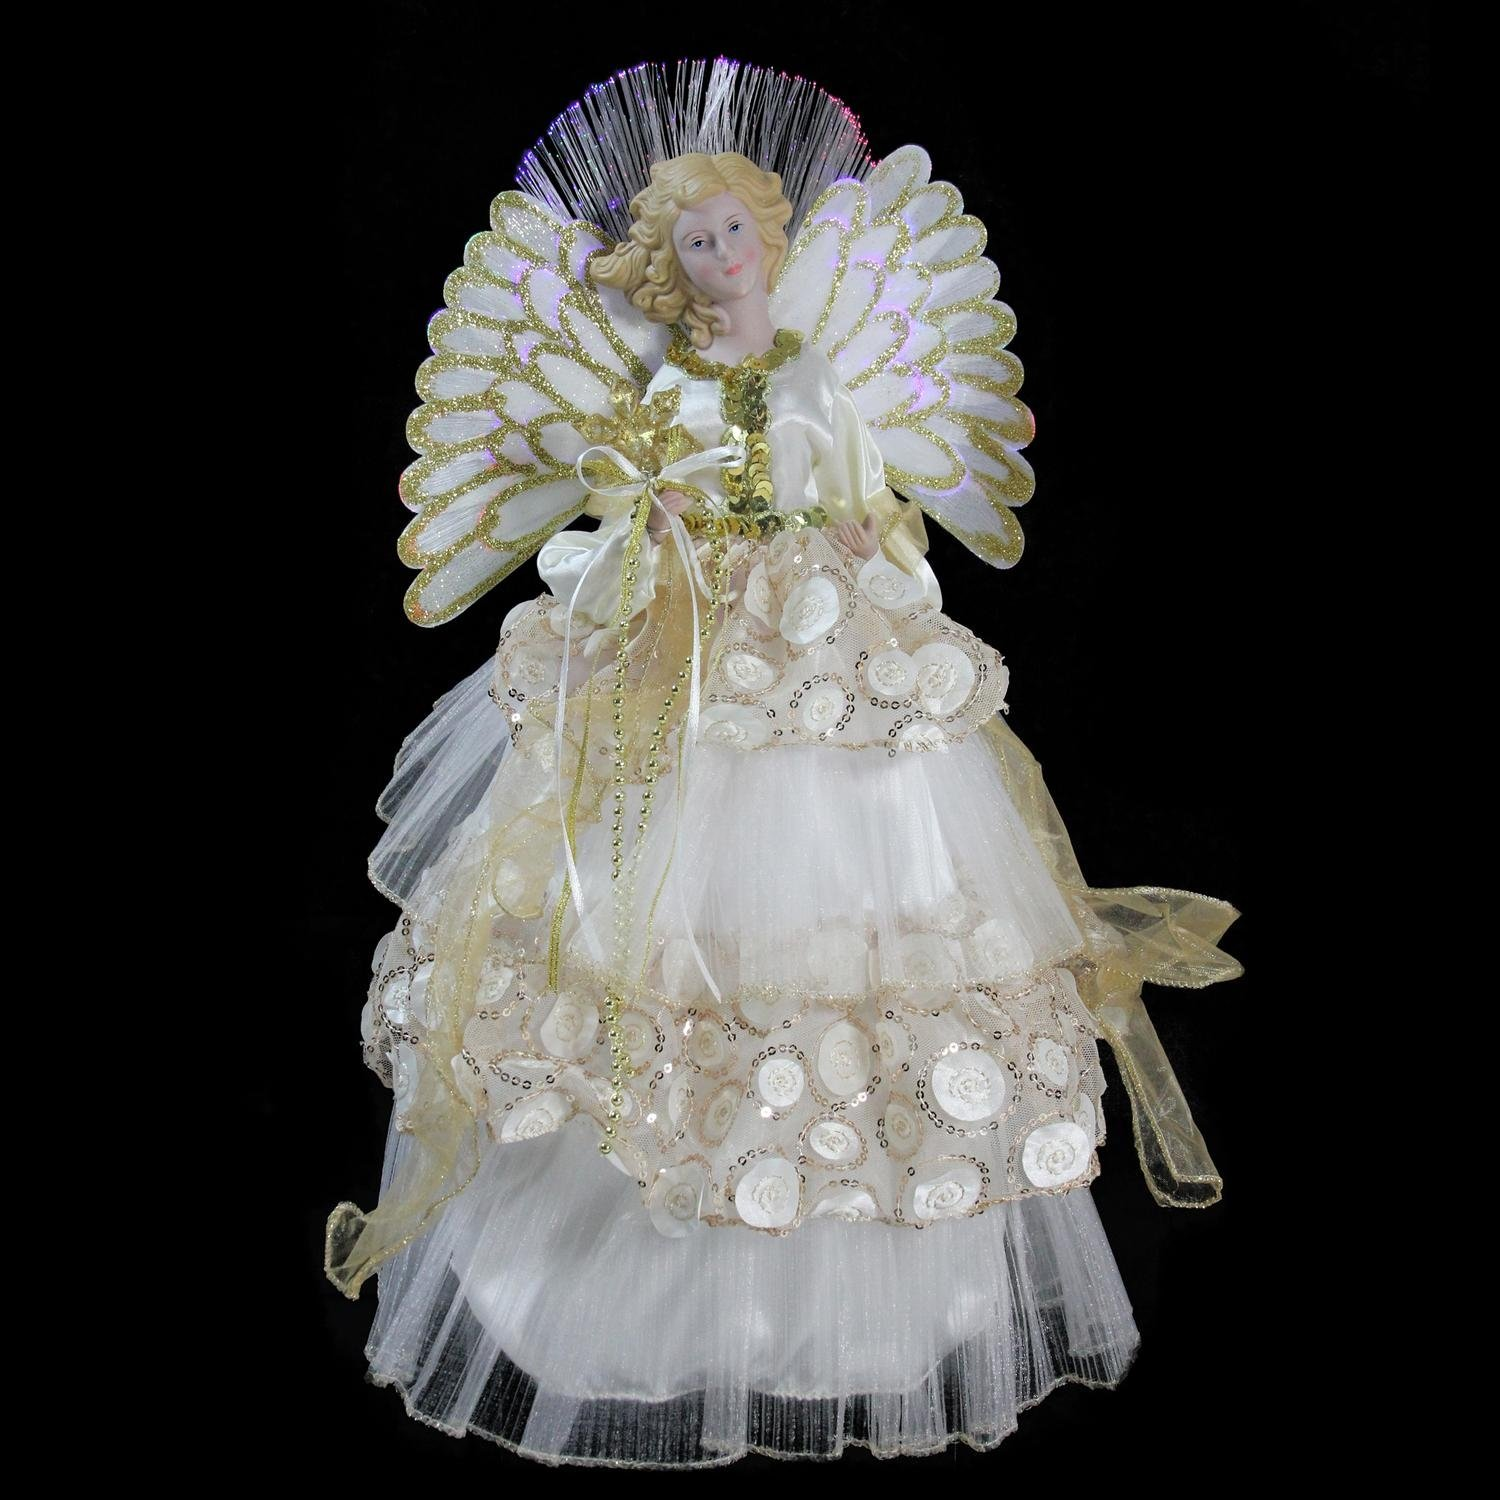 16'' Lighted B/O Fiber Optic Angel in Cream and Gold Sequined Gown Christmas Tree Topper